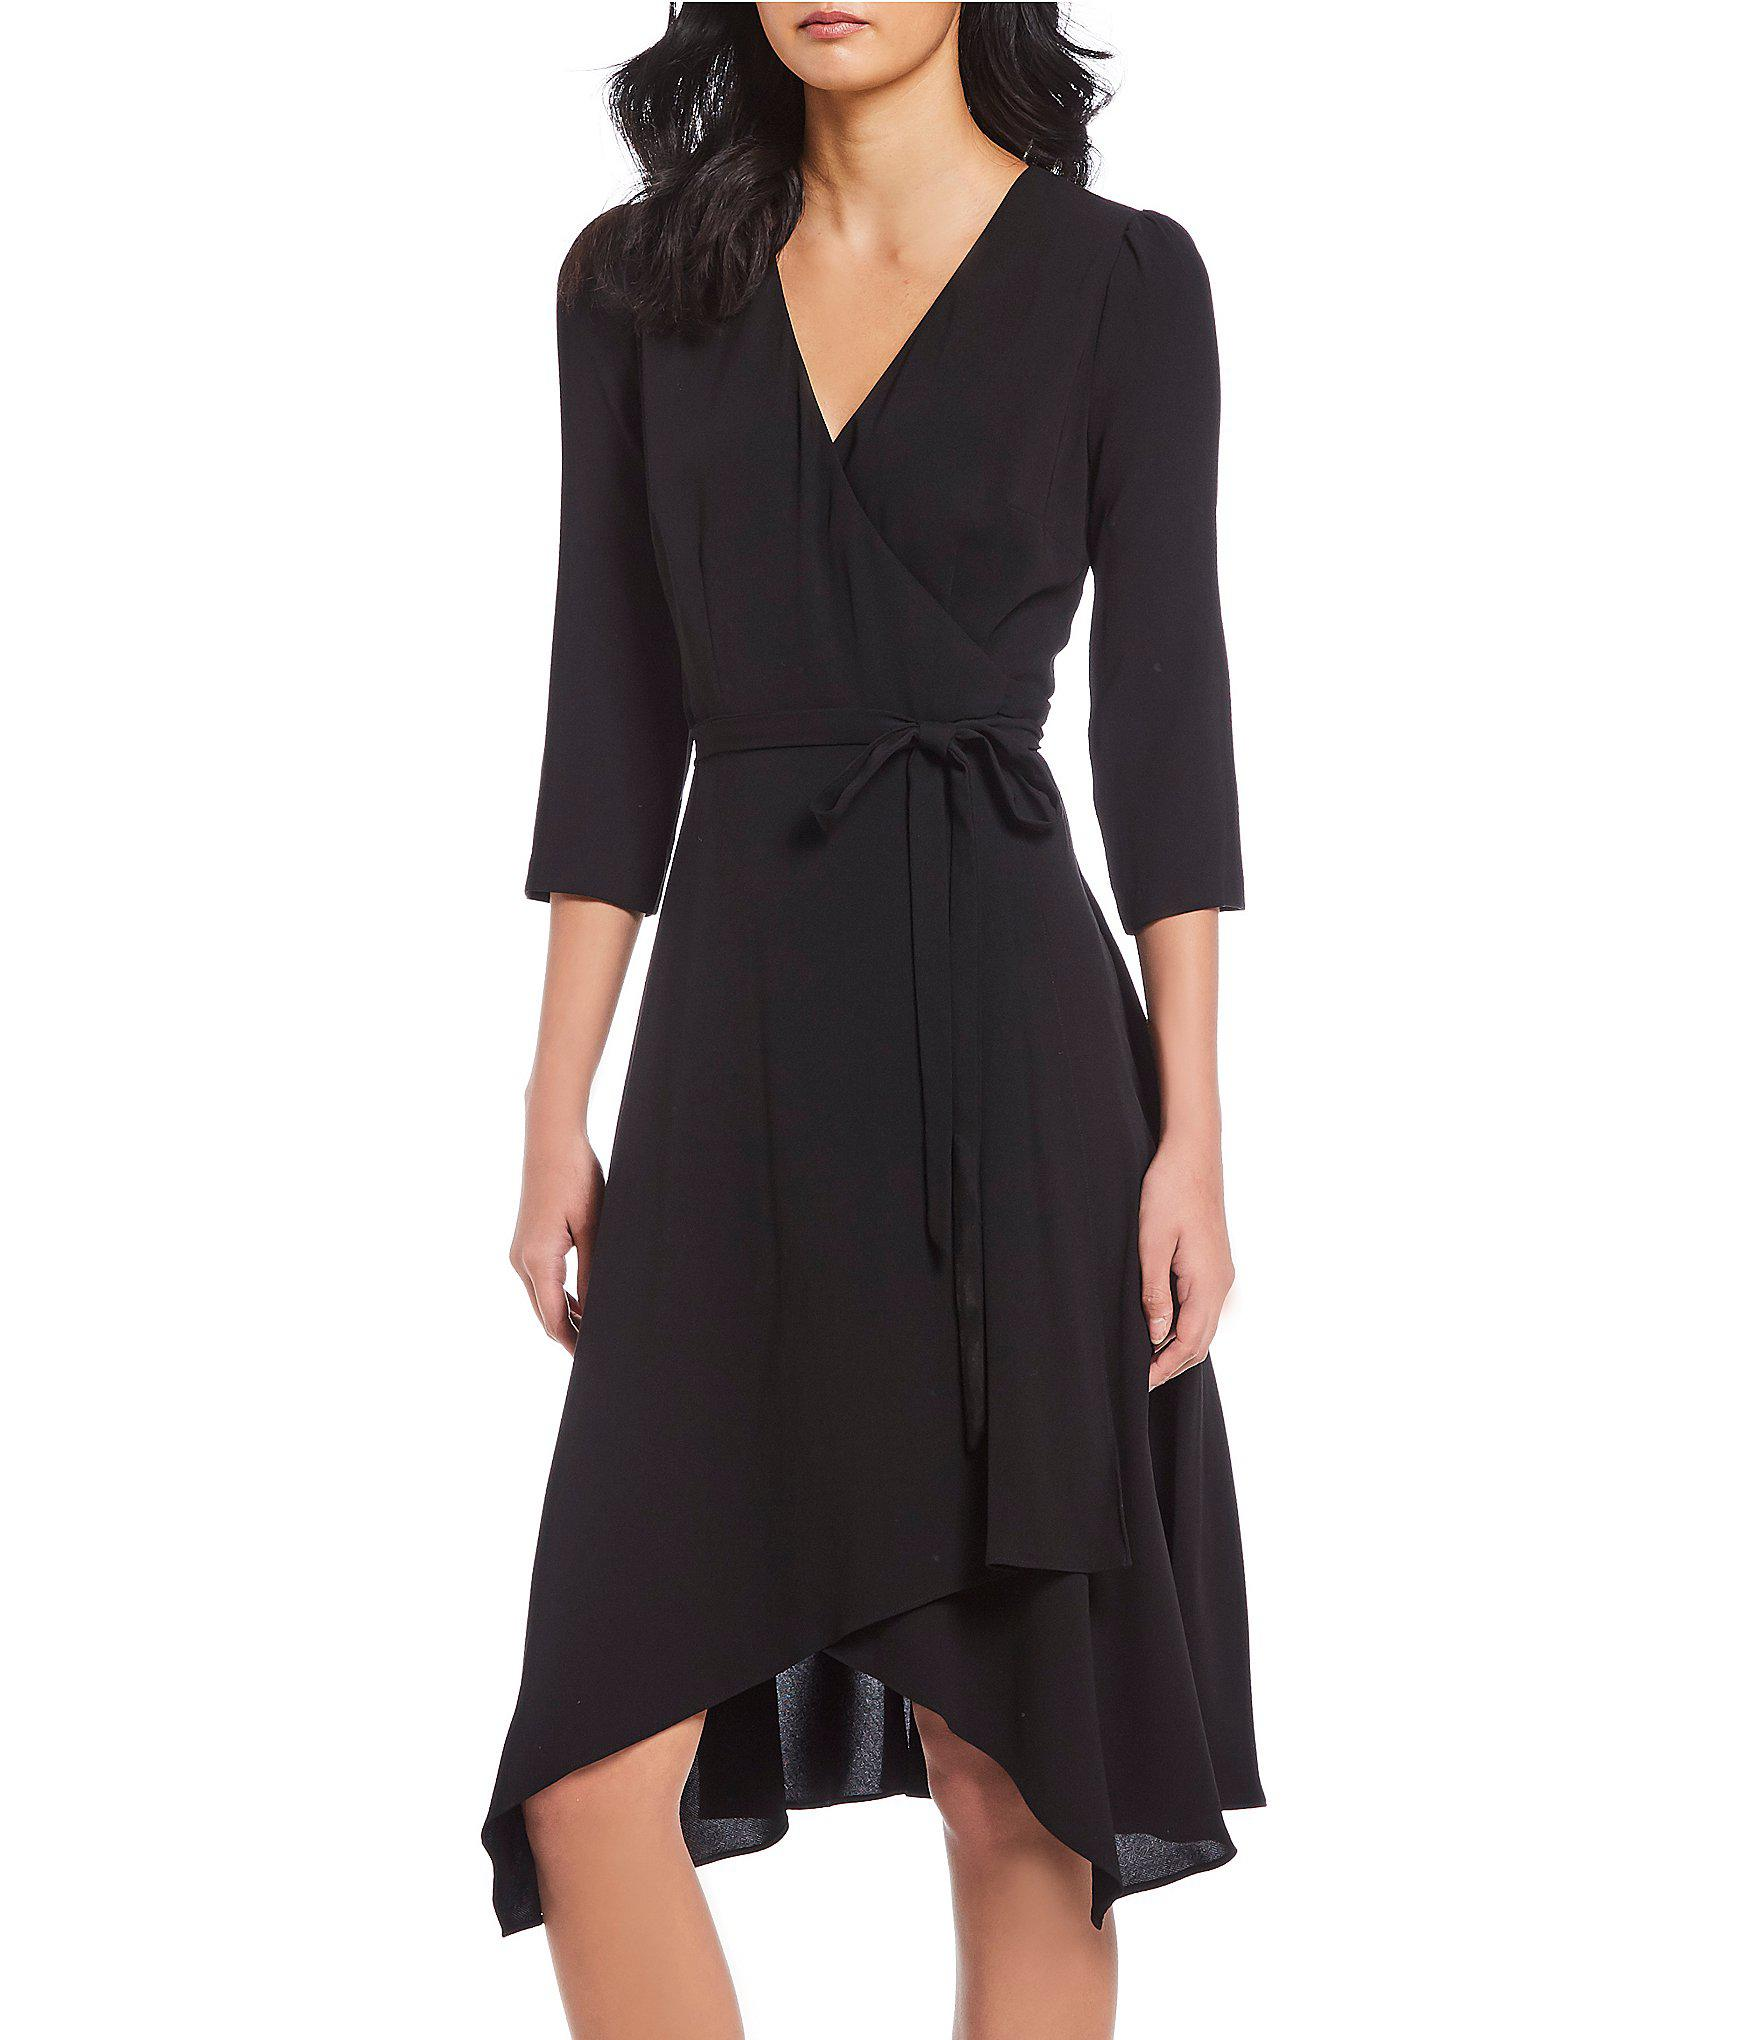 515e7496ff6 Lyst - Adrianna Papell Crepe Tie Front Wrap Dress in Black